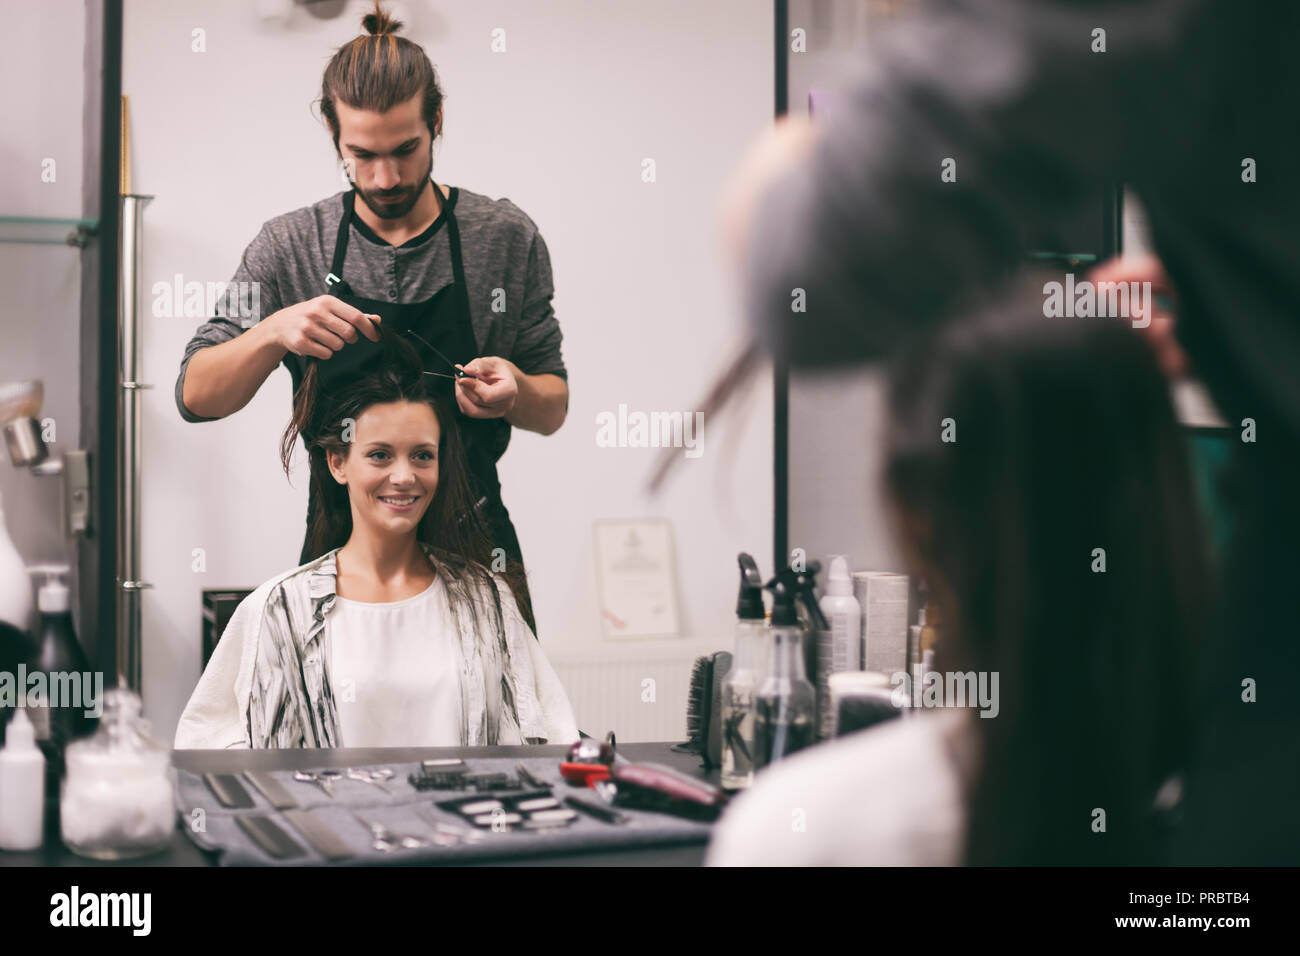 Young woman getting new hairstyle at professional hair styling saloon. Stock Photo